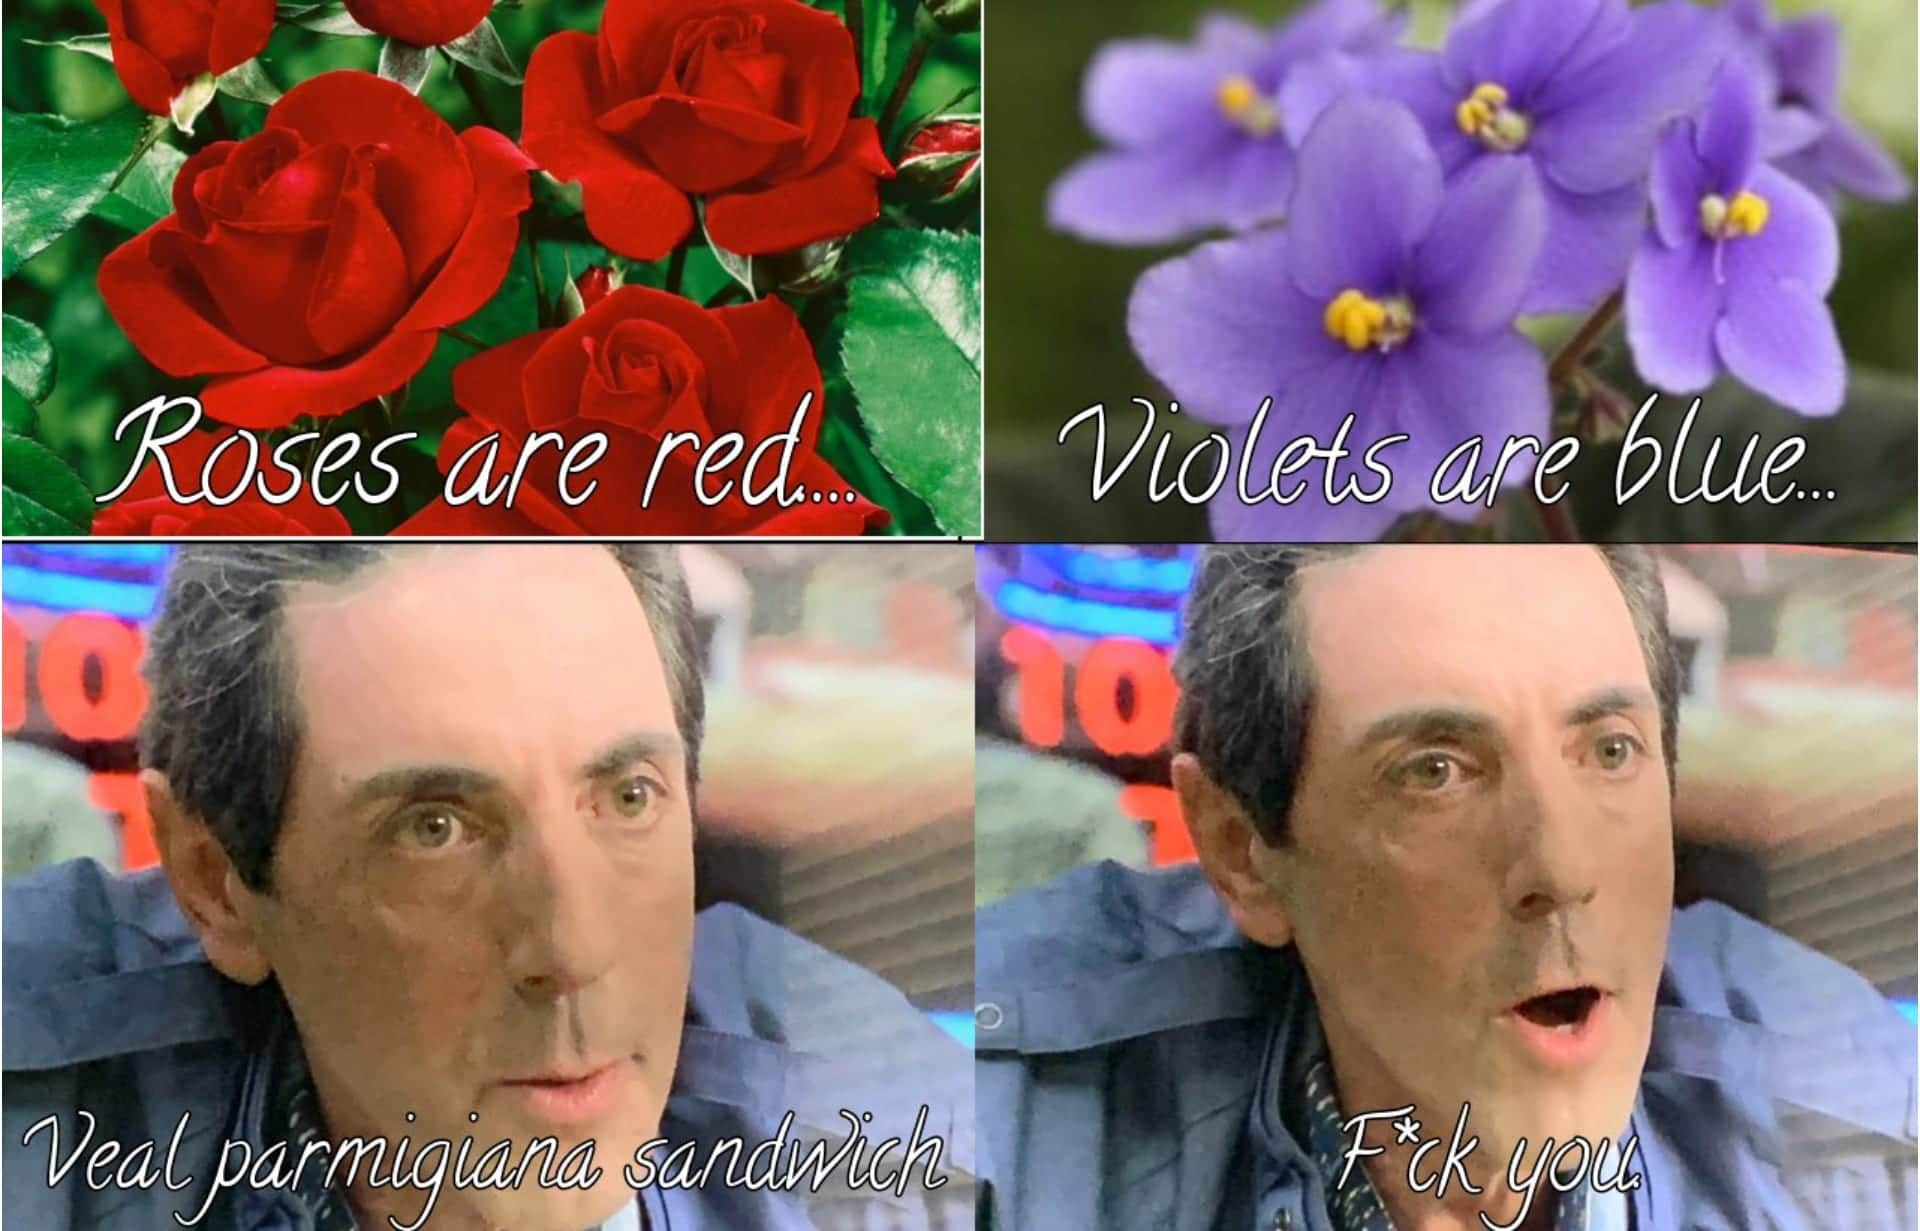 Richie Aprile with roses and violets